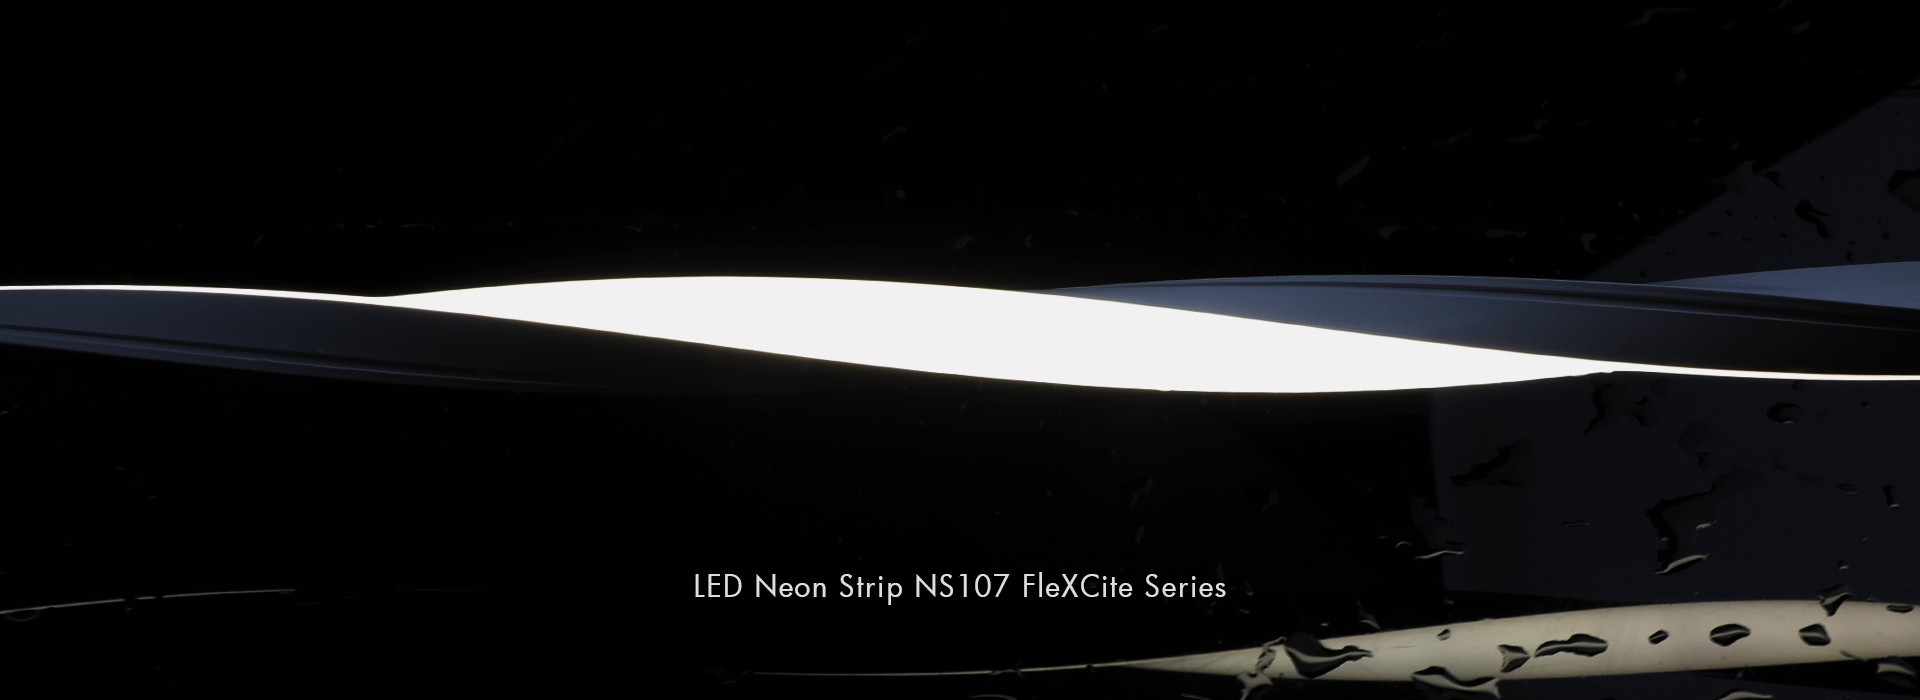 LED Neonstreifen NS-107 FleXCite Serie